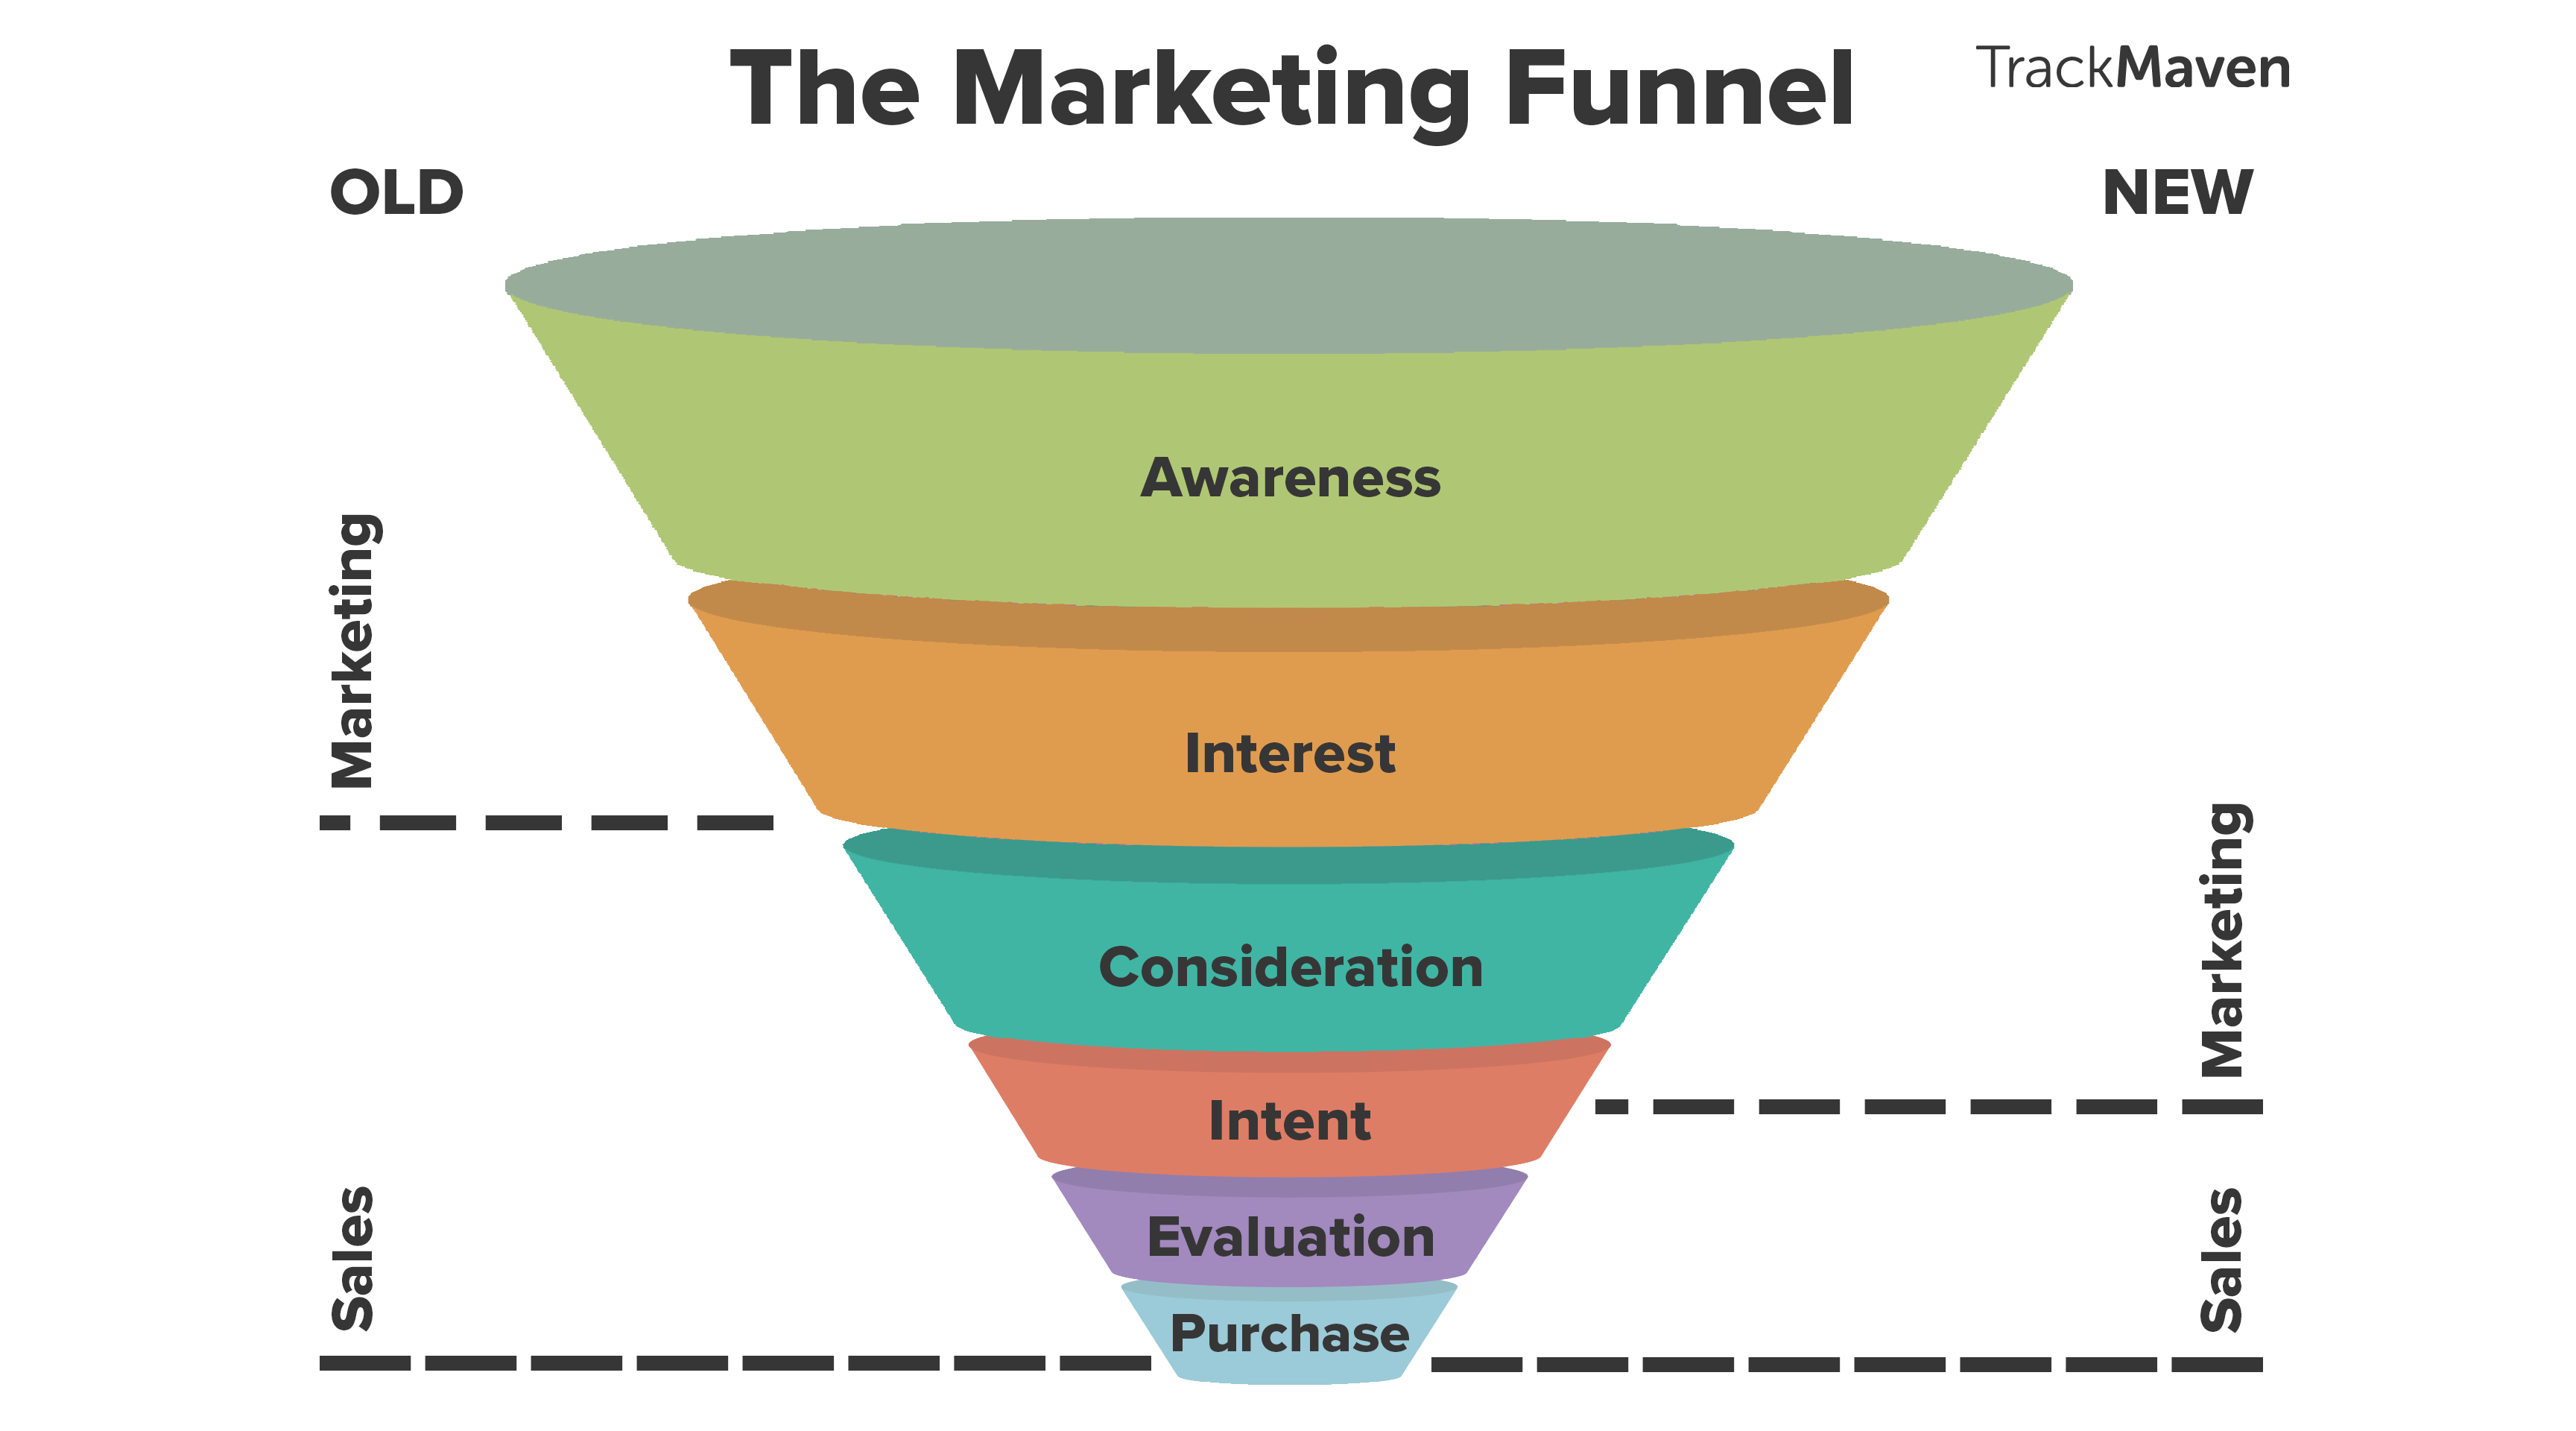 How The Marketing Funnel Works From Top To Bottom Wiring Diagram Don39t Pay Any Attention Note On